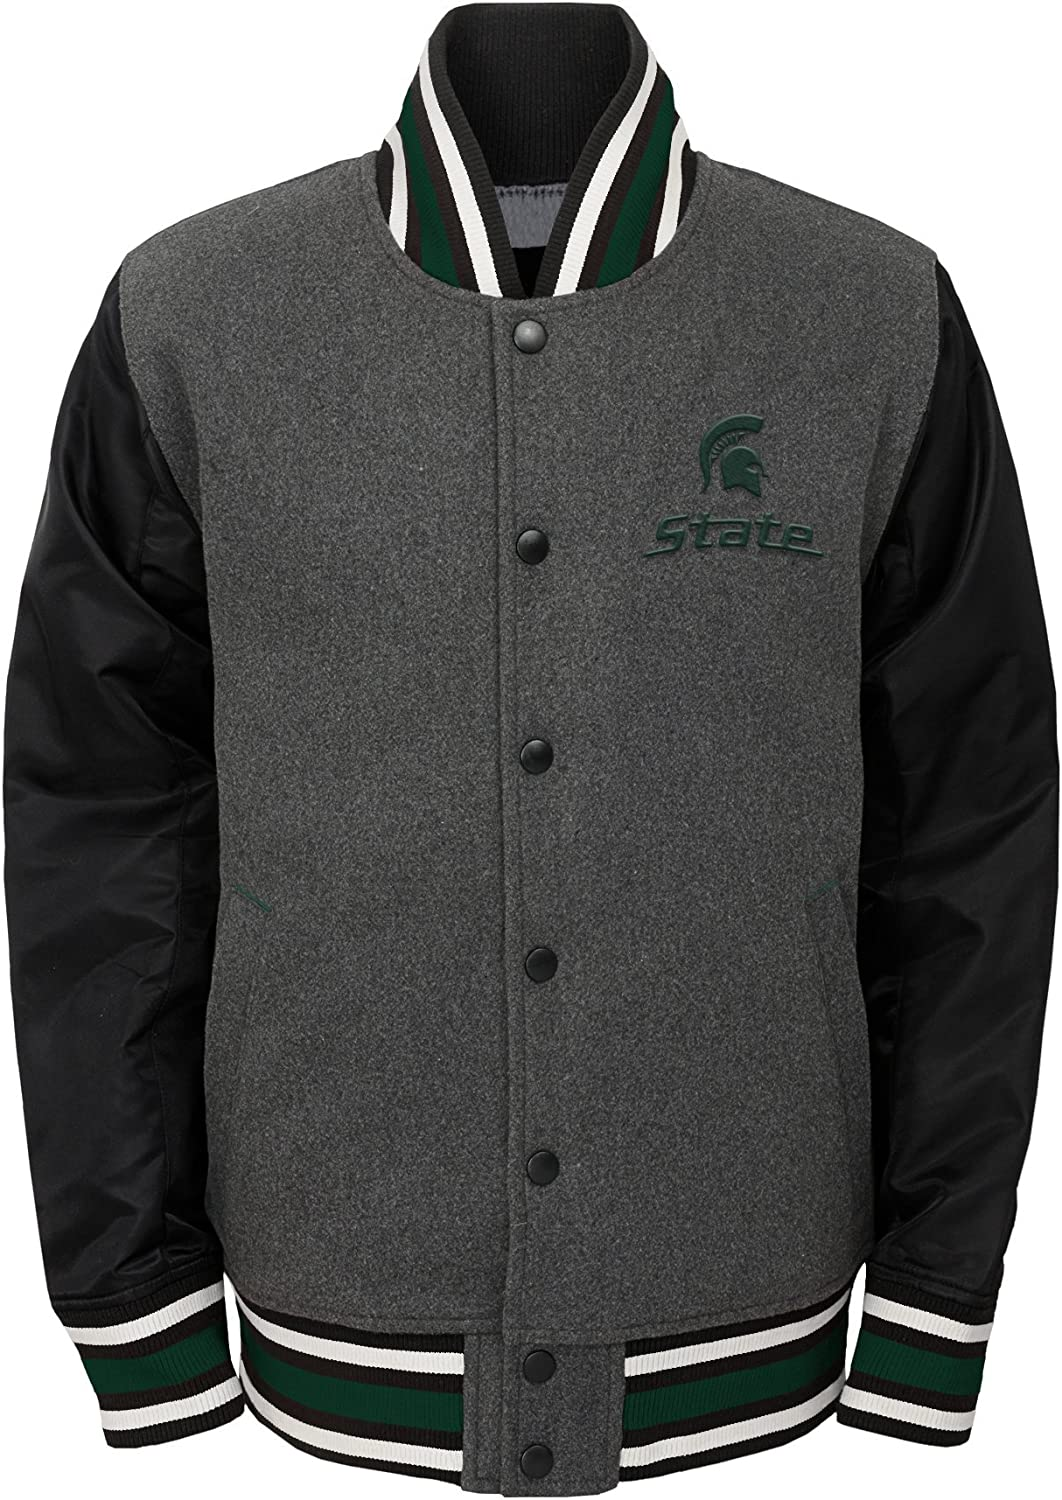 Medium Michigan State Spartans 10-12 Charcoal Grey NCAA by Outerstuff NCAA Youth Boys Letterman Varsity Jacket